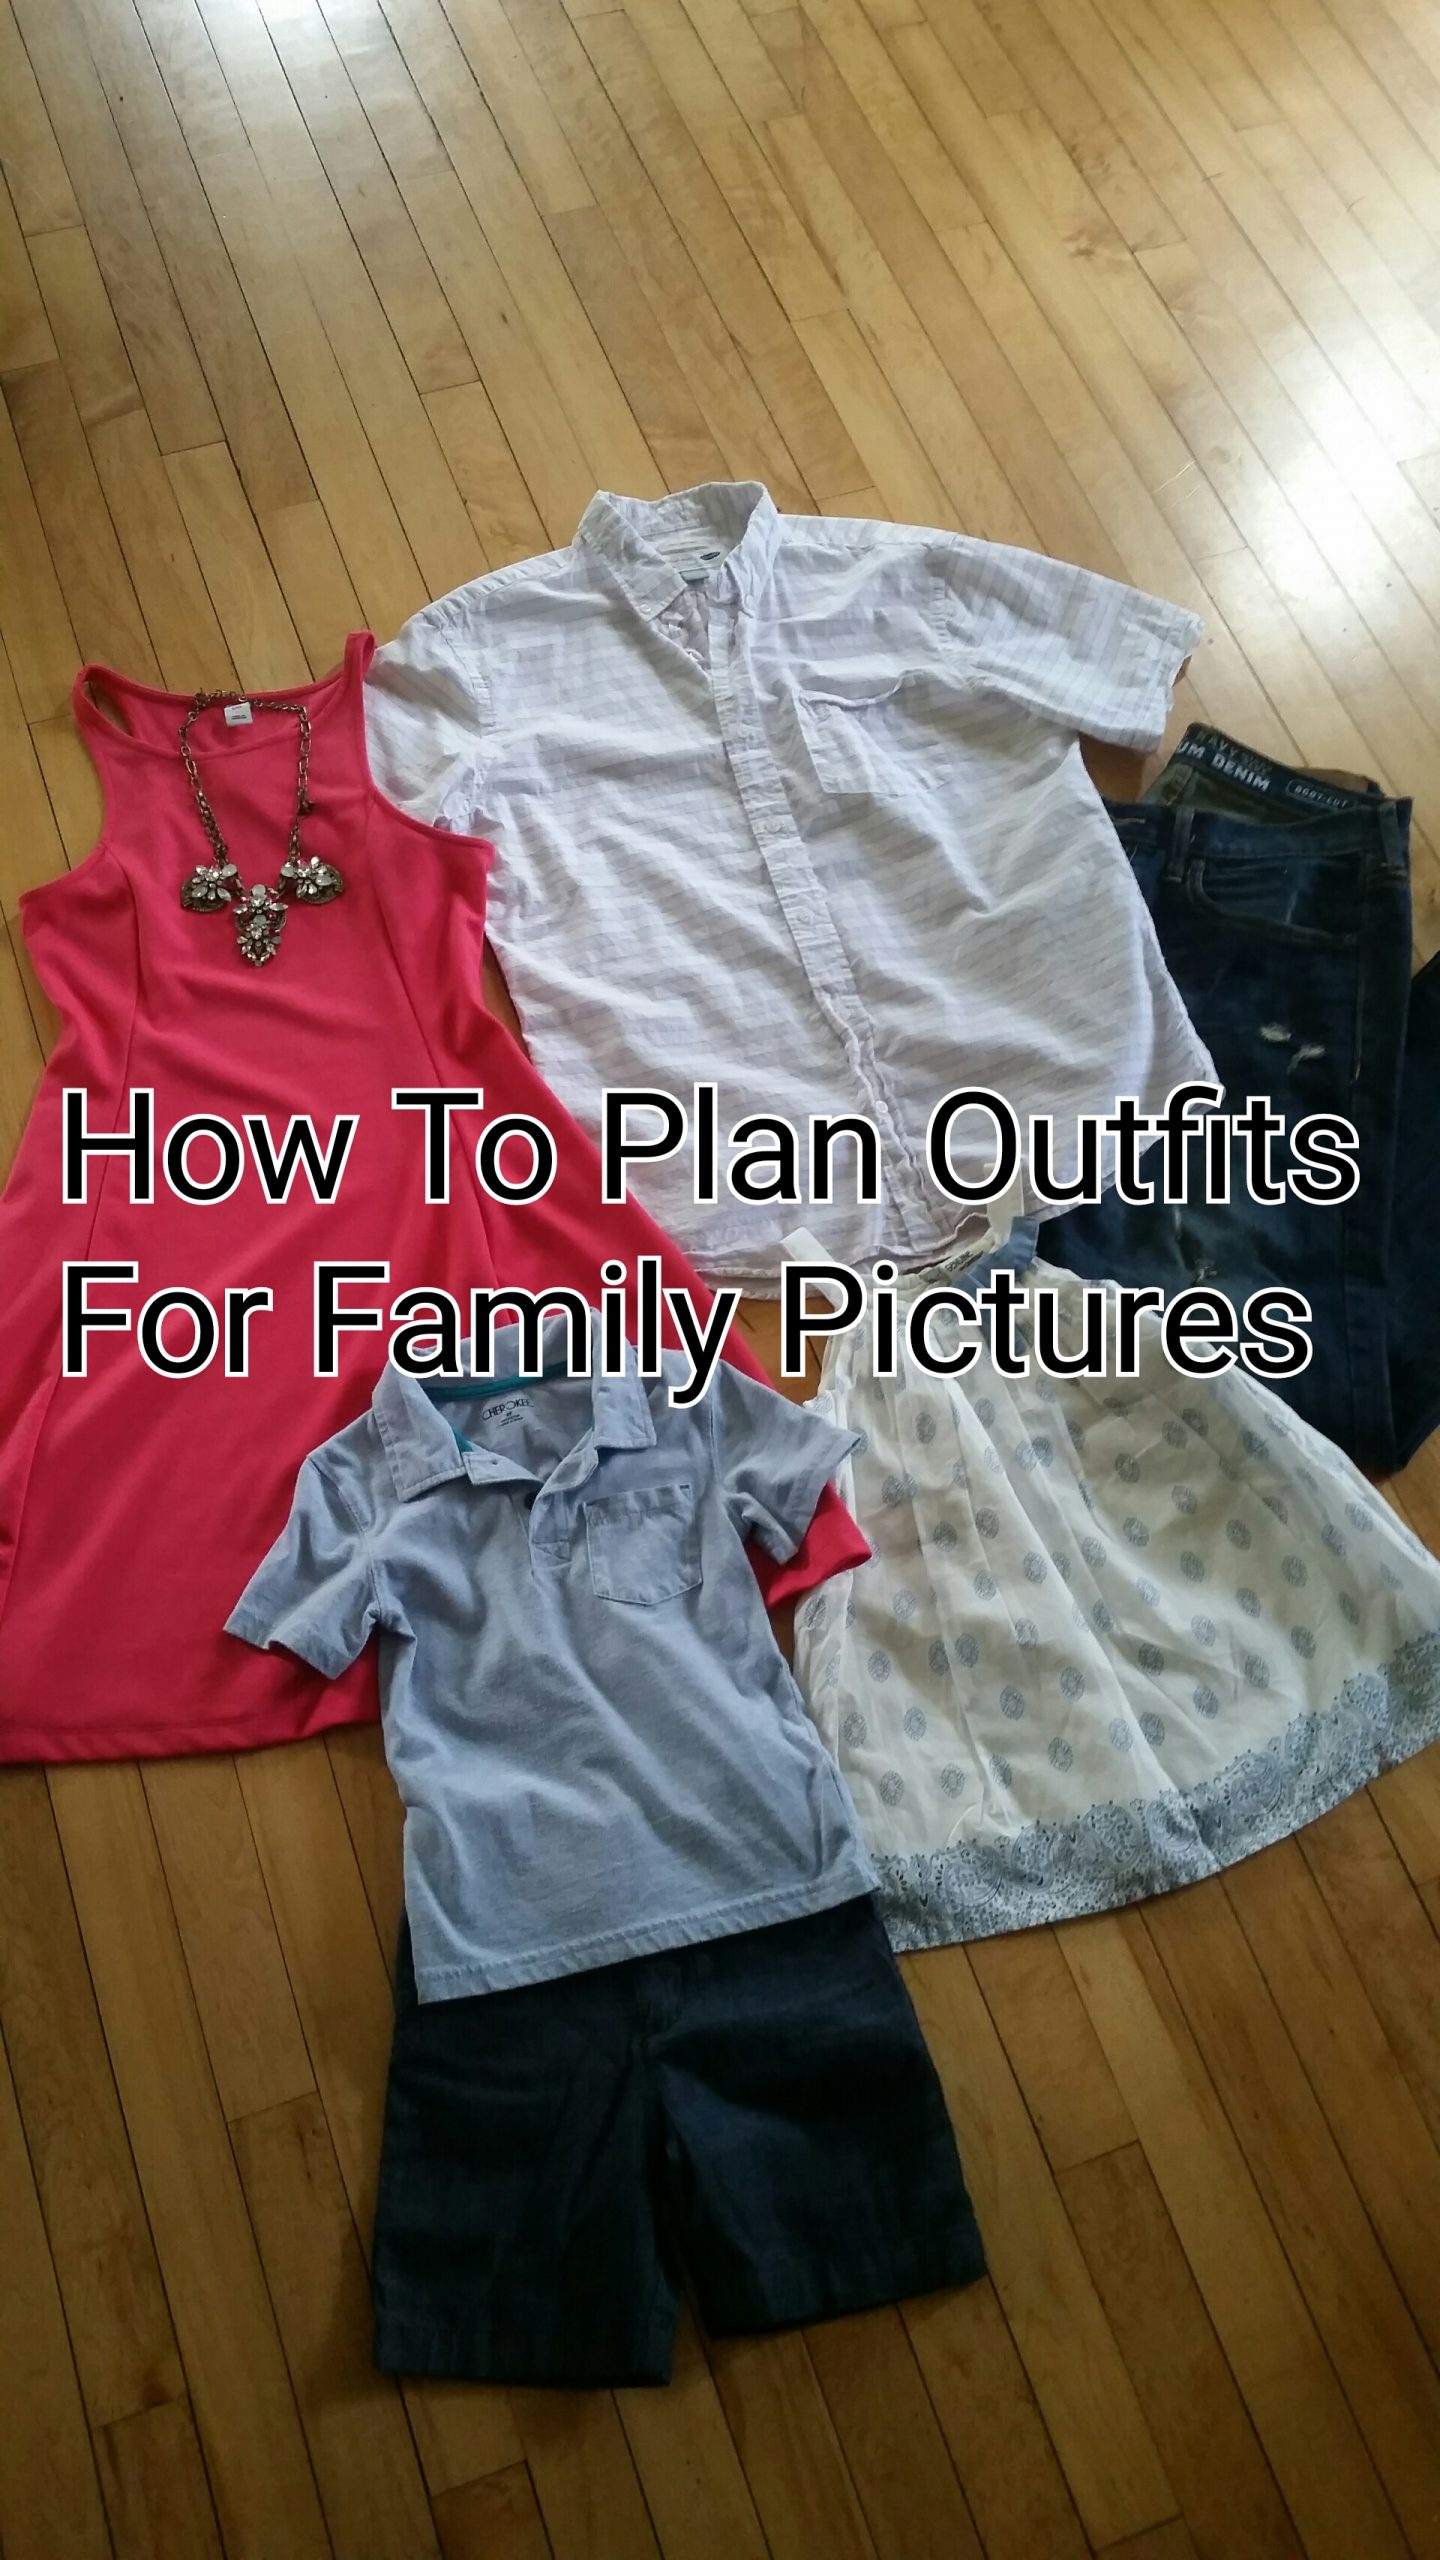 Planning Outfits For Family Pictures